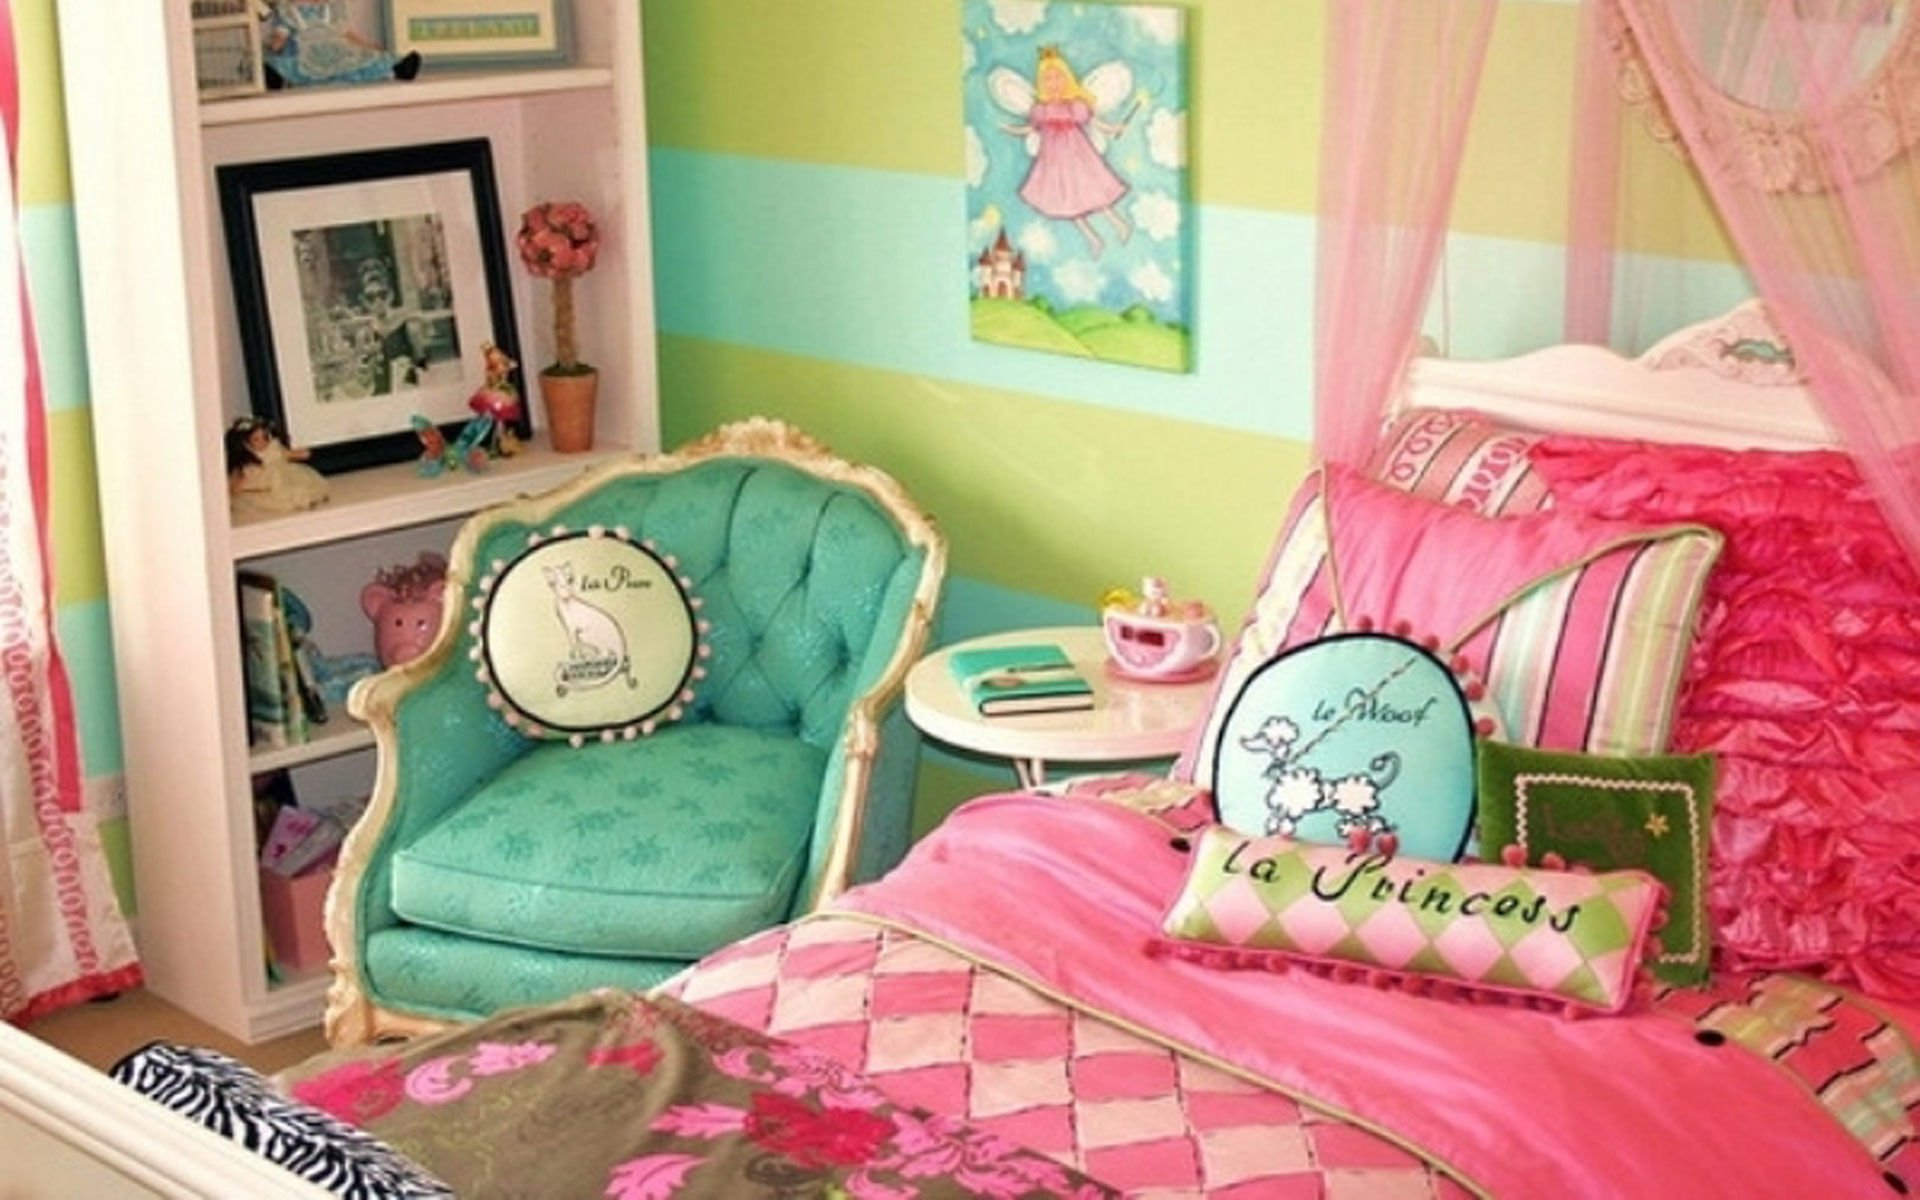 15 DIY Decor Ideas For Teen Girls Step by step K4 Craft